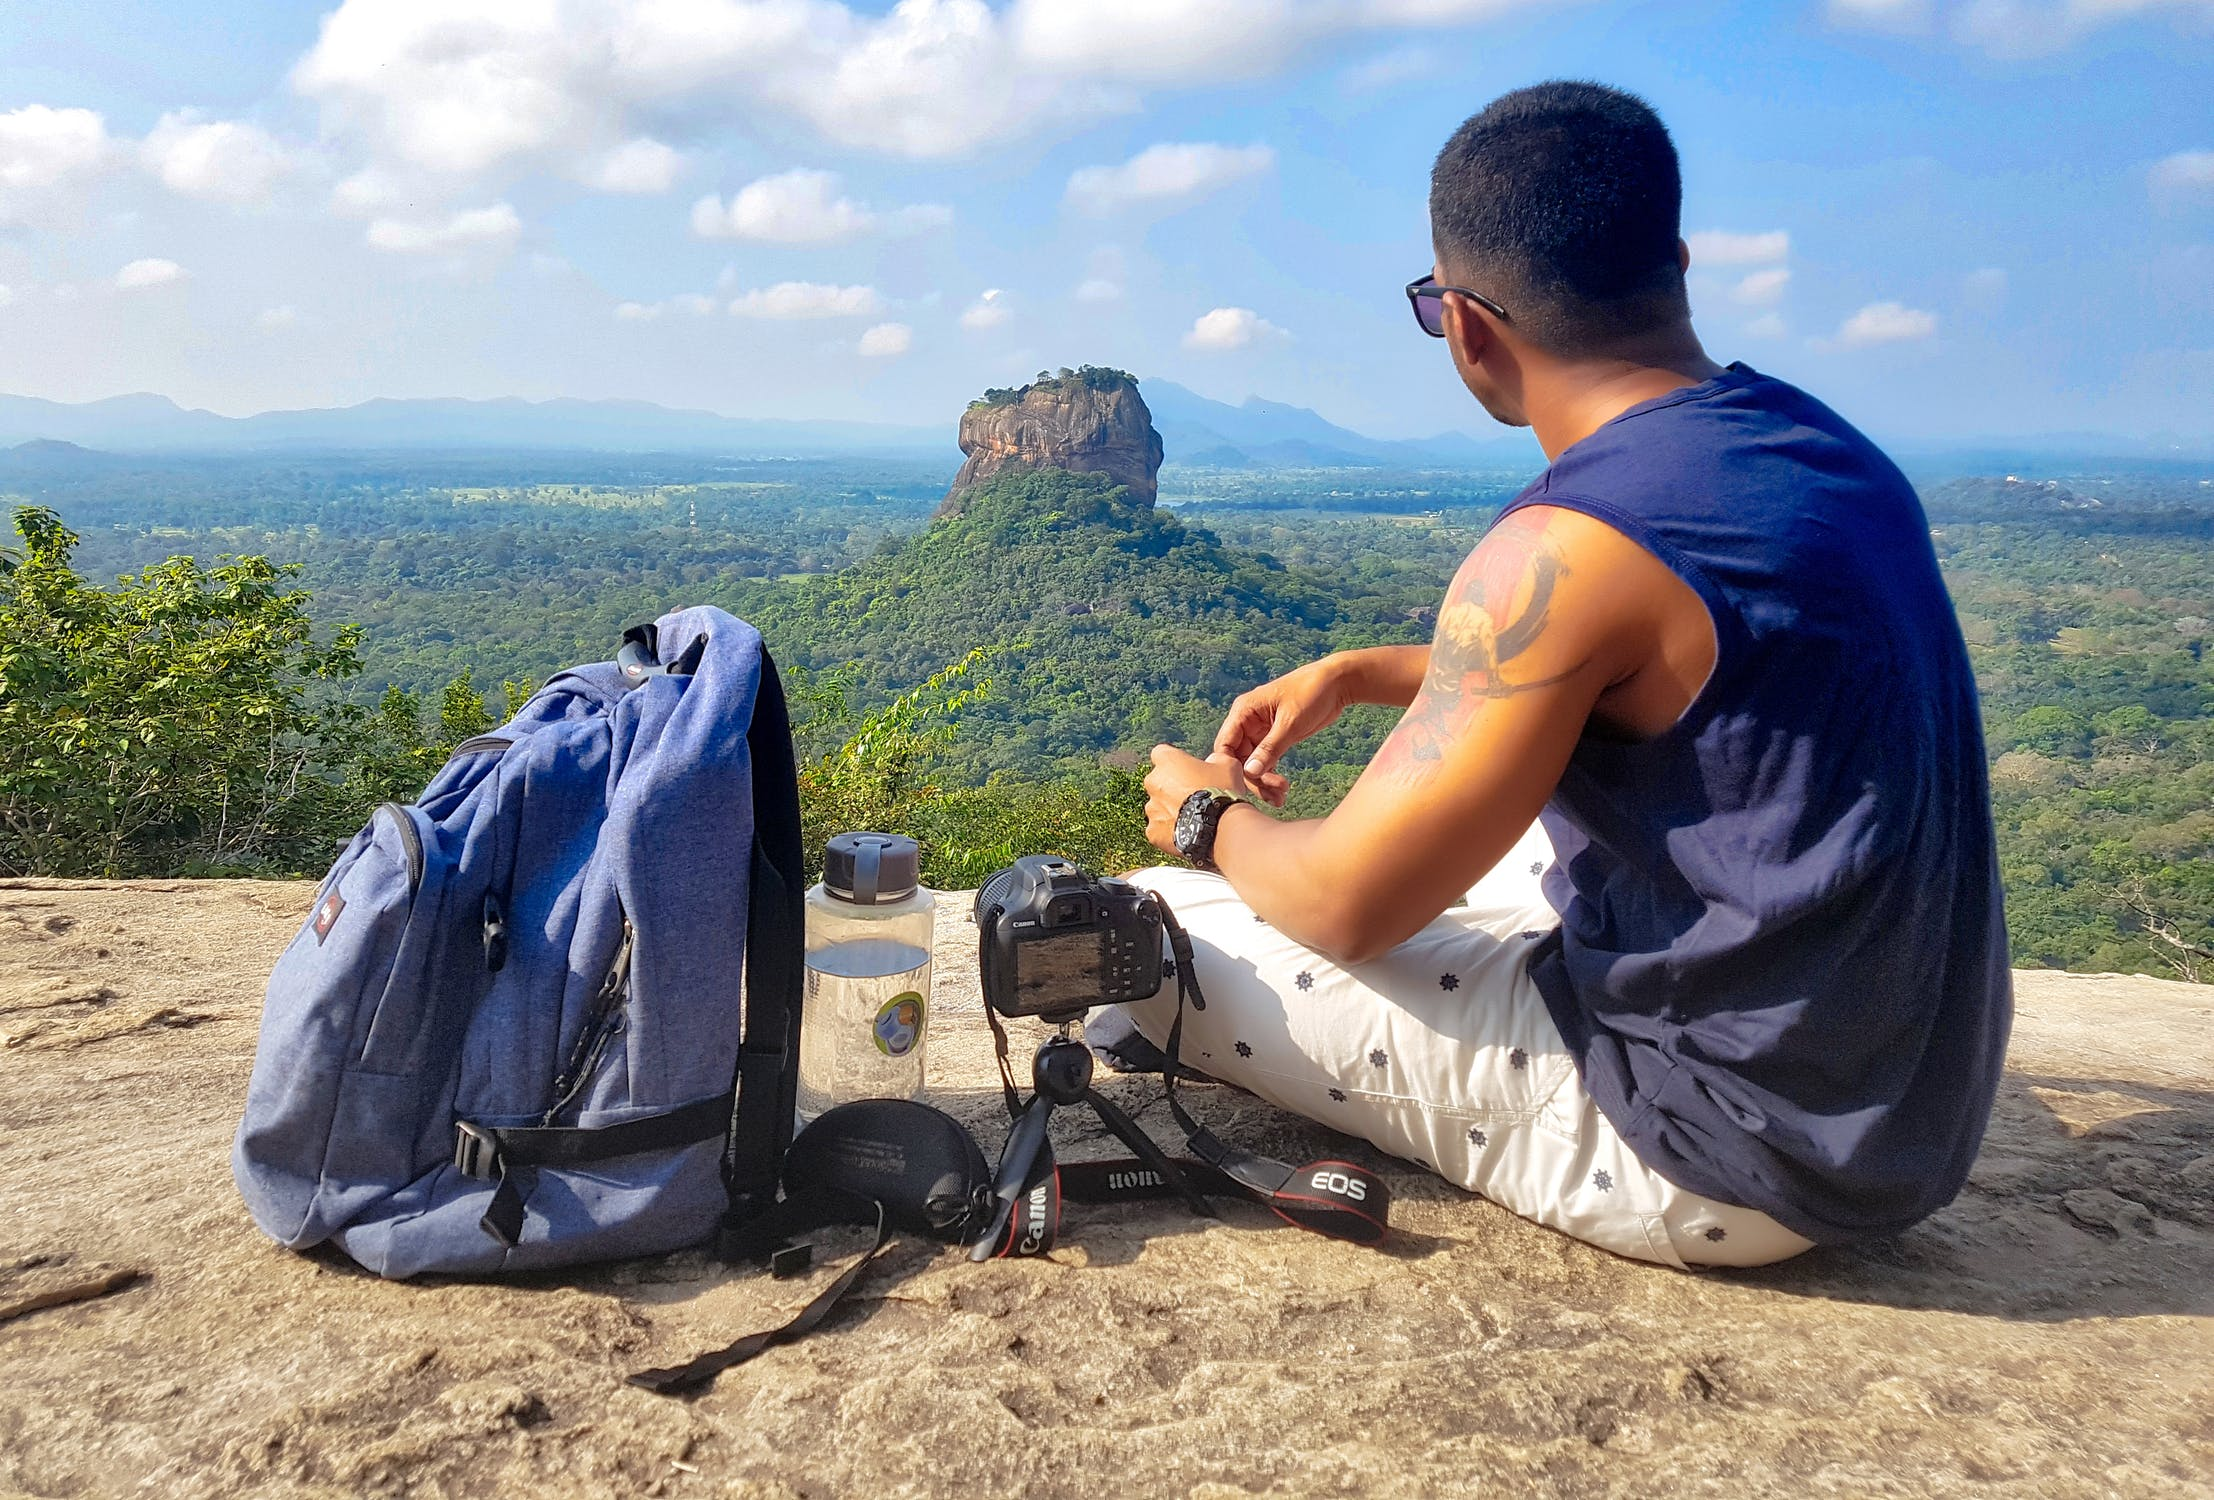 Top 5 Travel Water Bottles for Your Next Trip